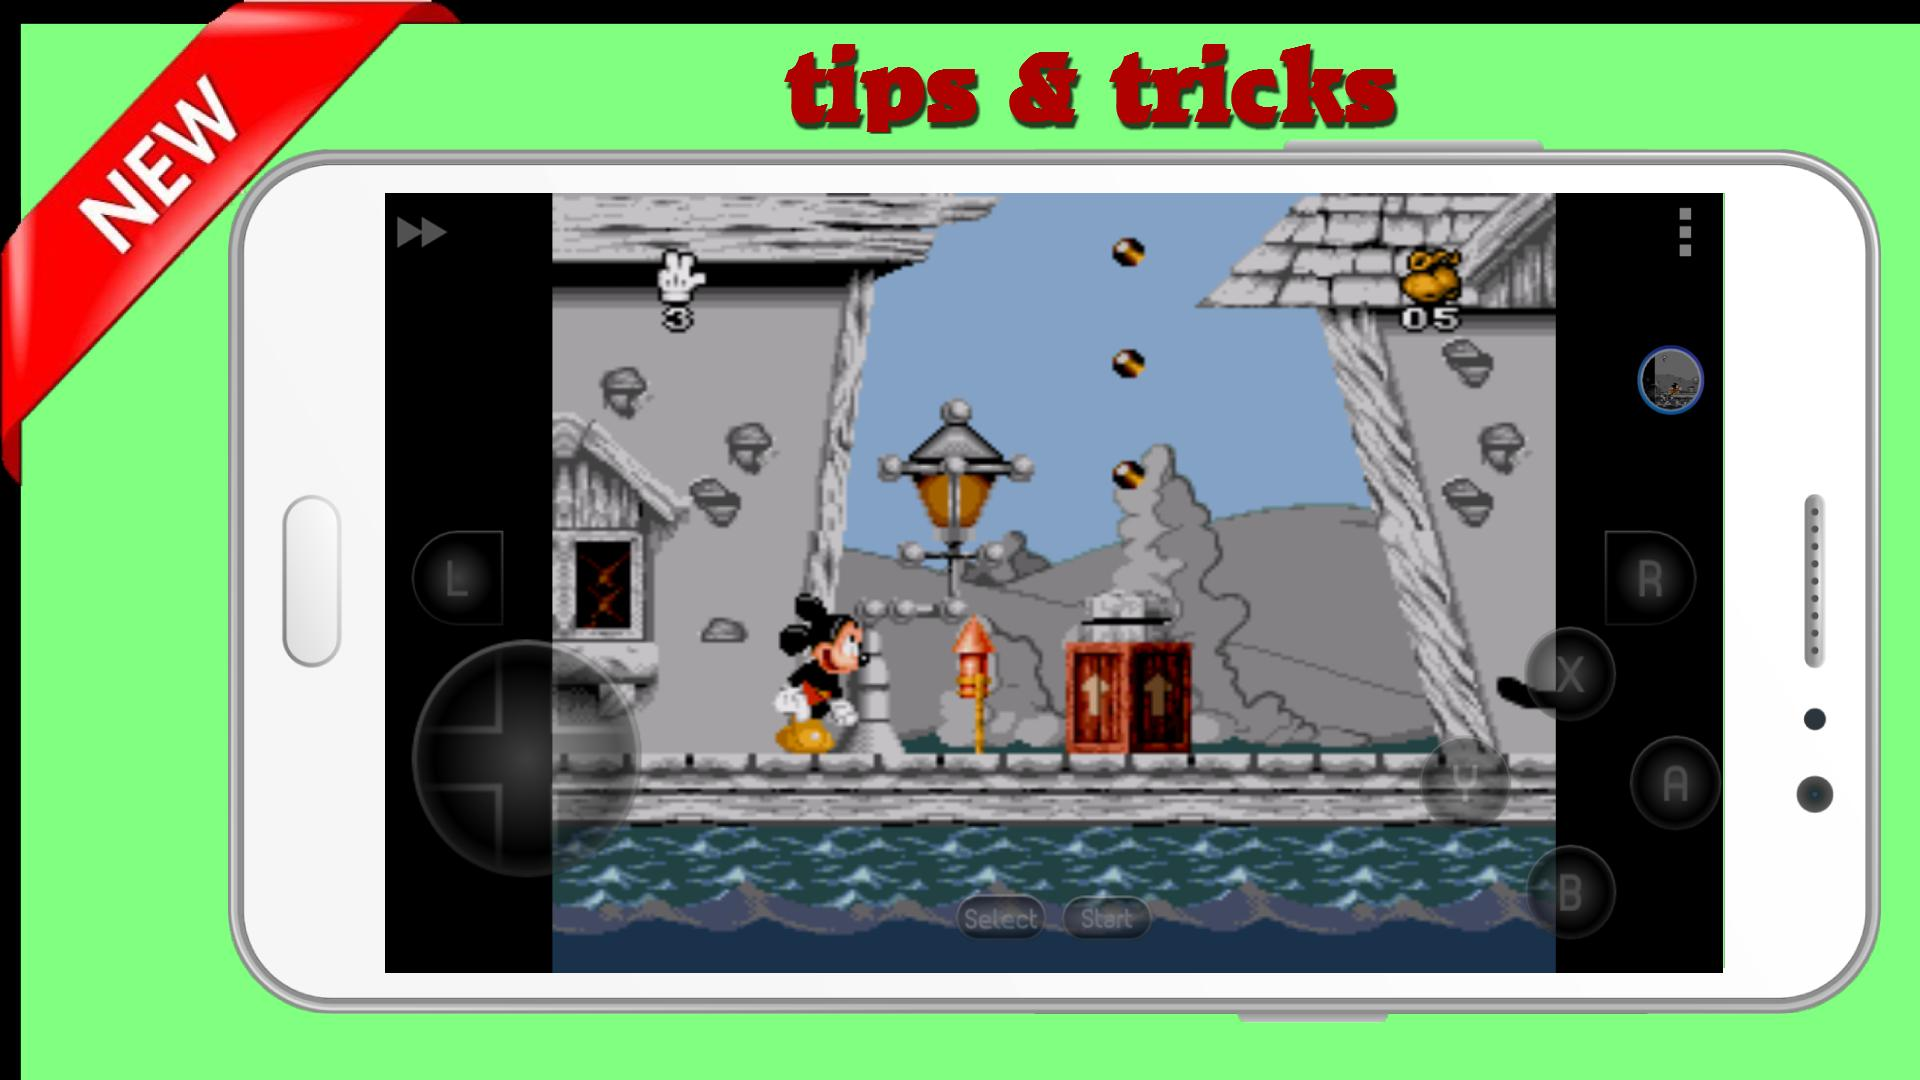 guide for mickey mania for Android - APK Download